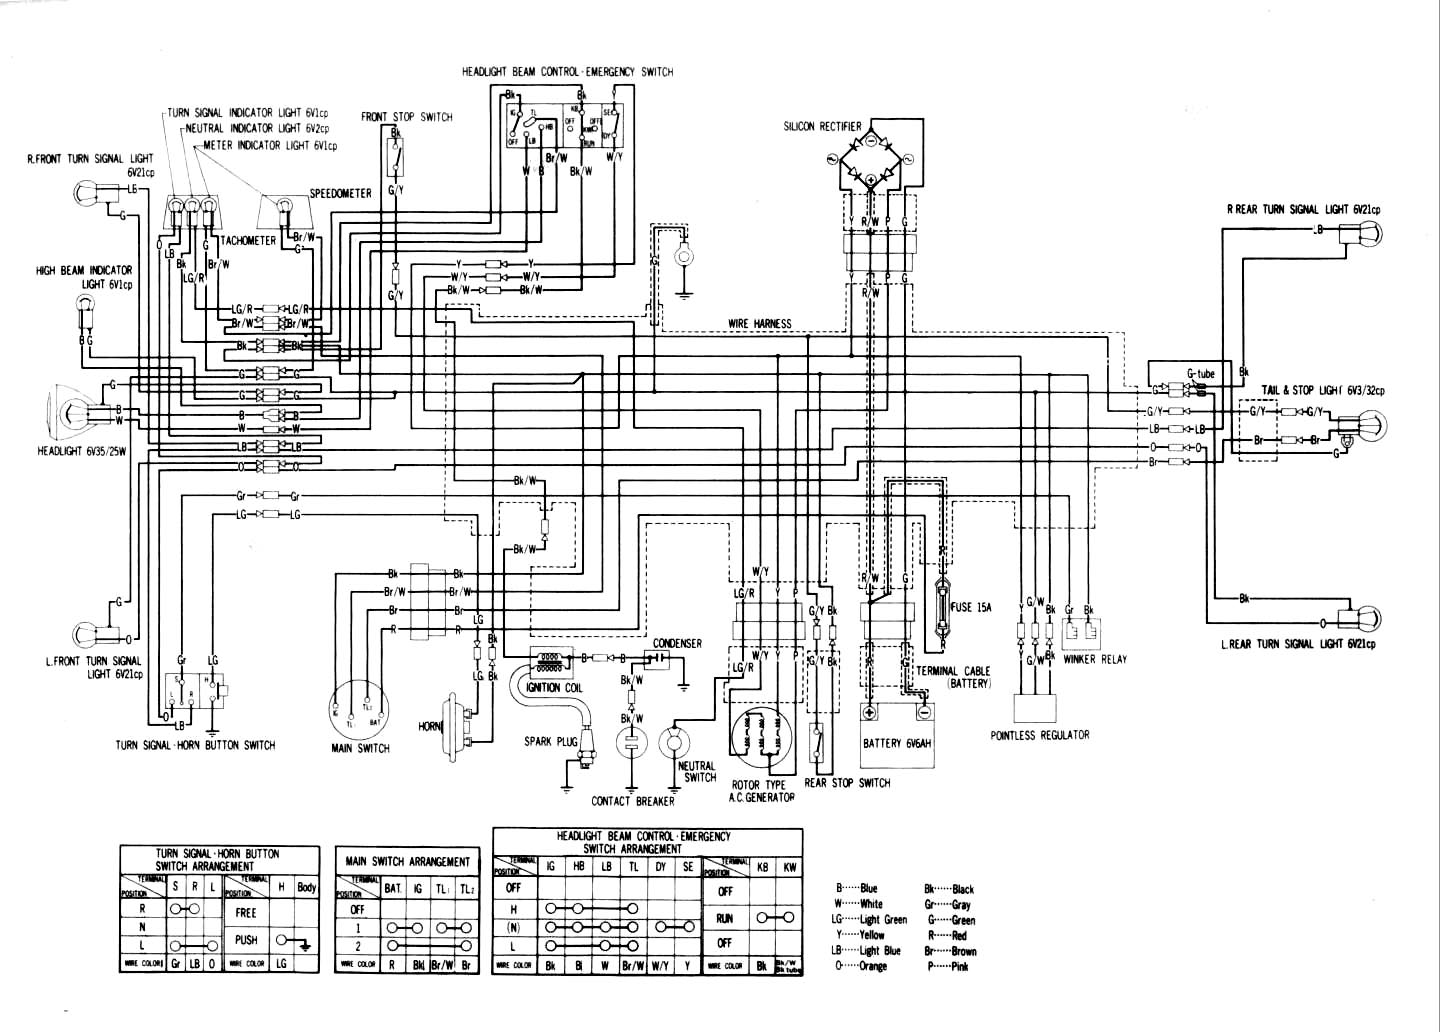 1975 Honda Xl 125 Wiring Diagram Portal Cb750 Schematics Diagrams Rh Oregonmotorcycleparts Com 1982